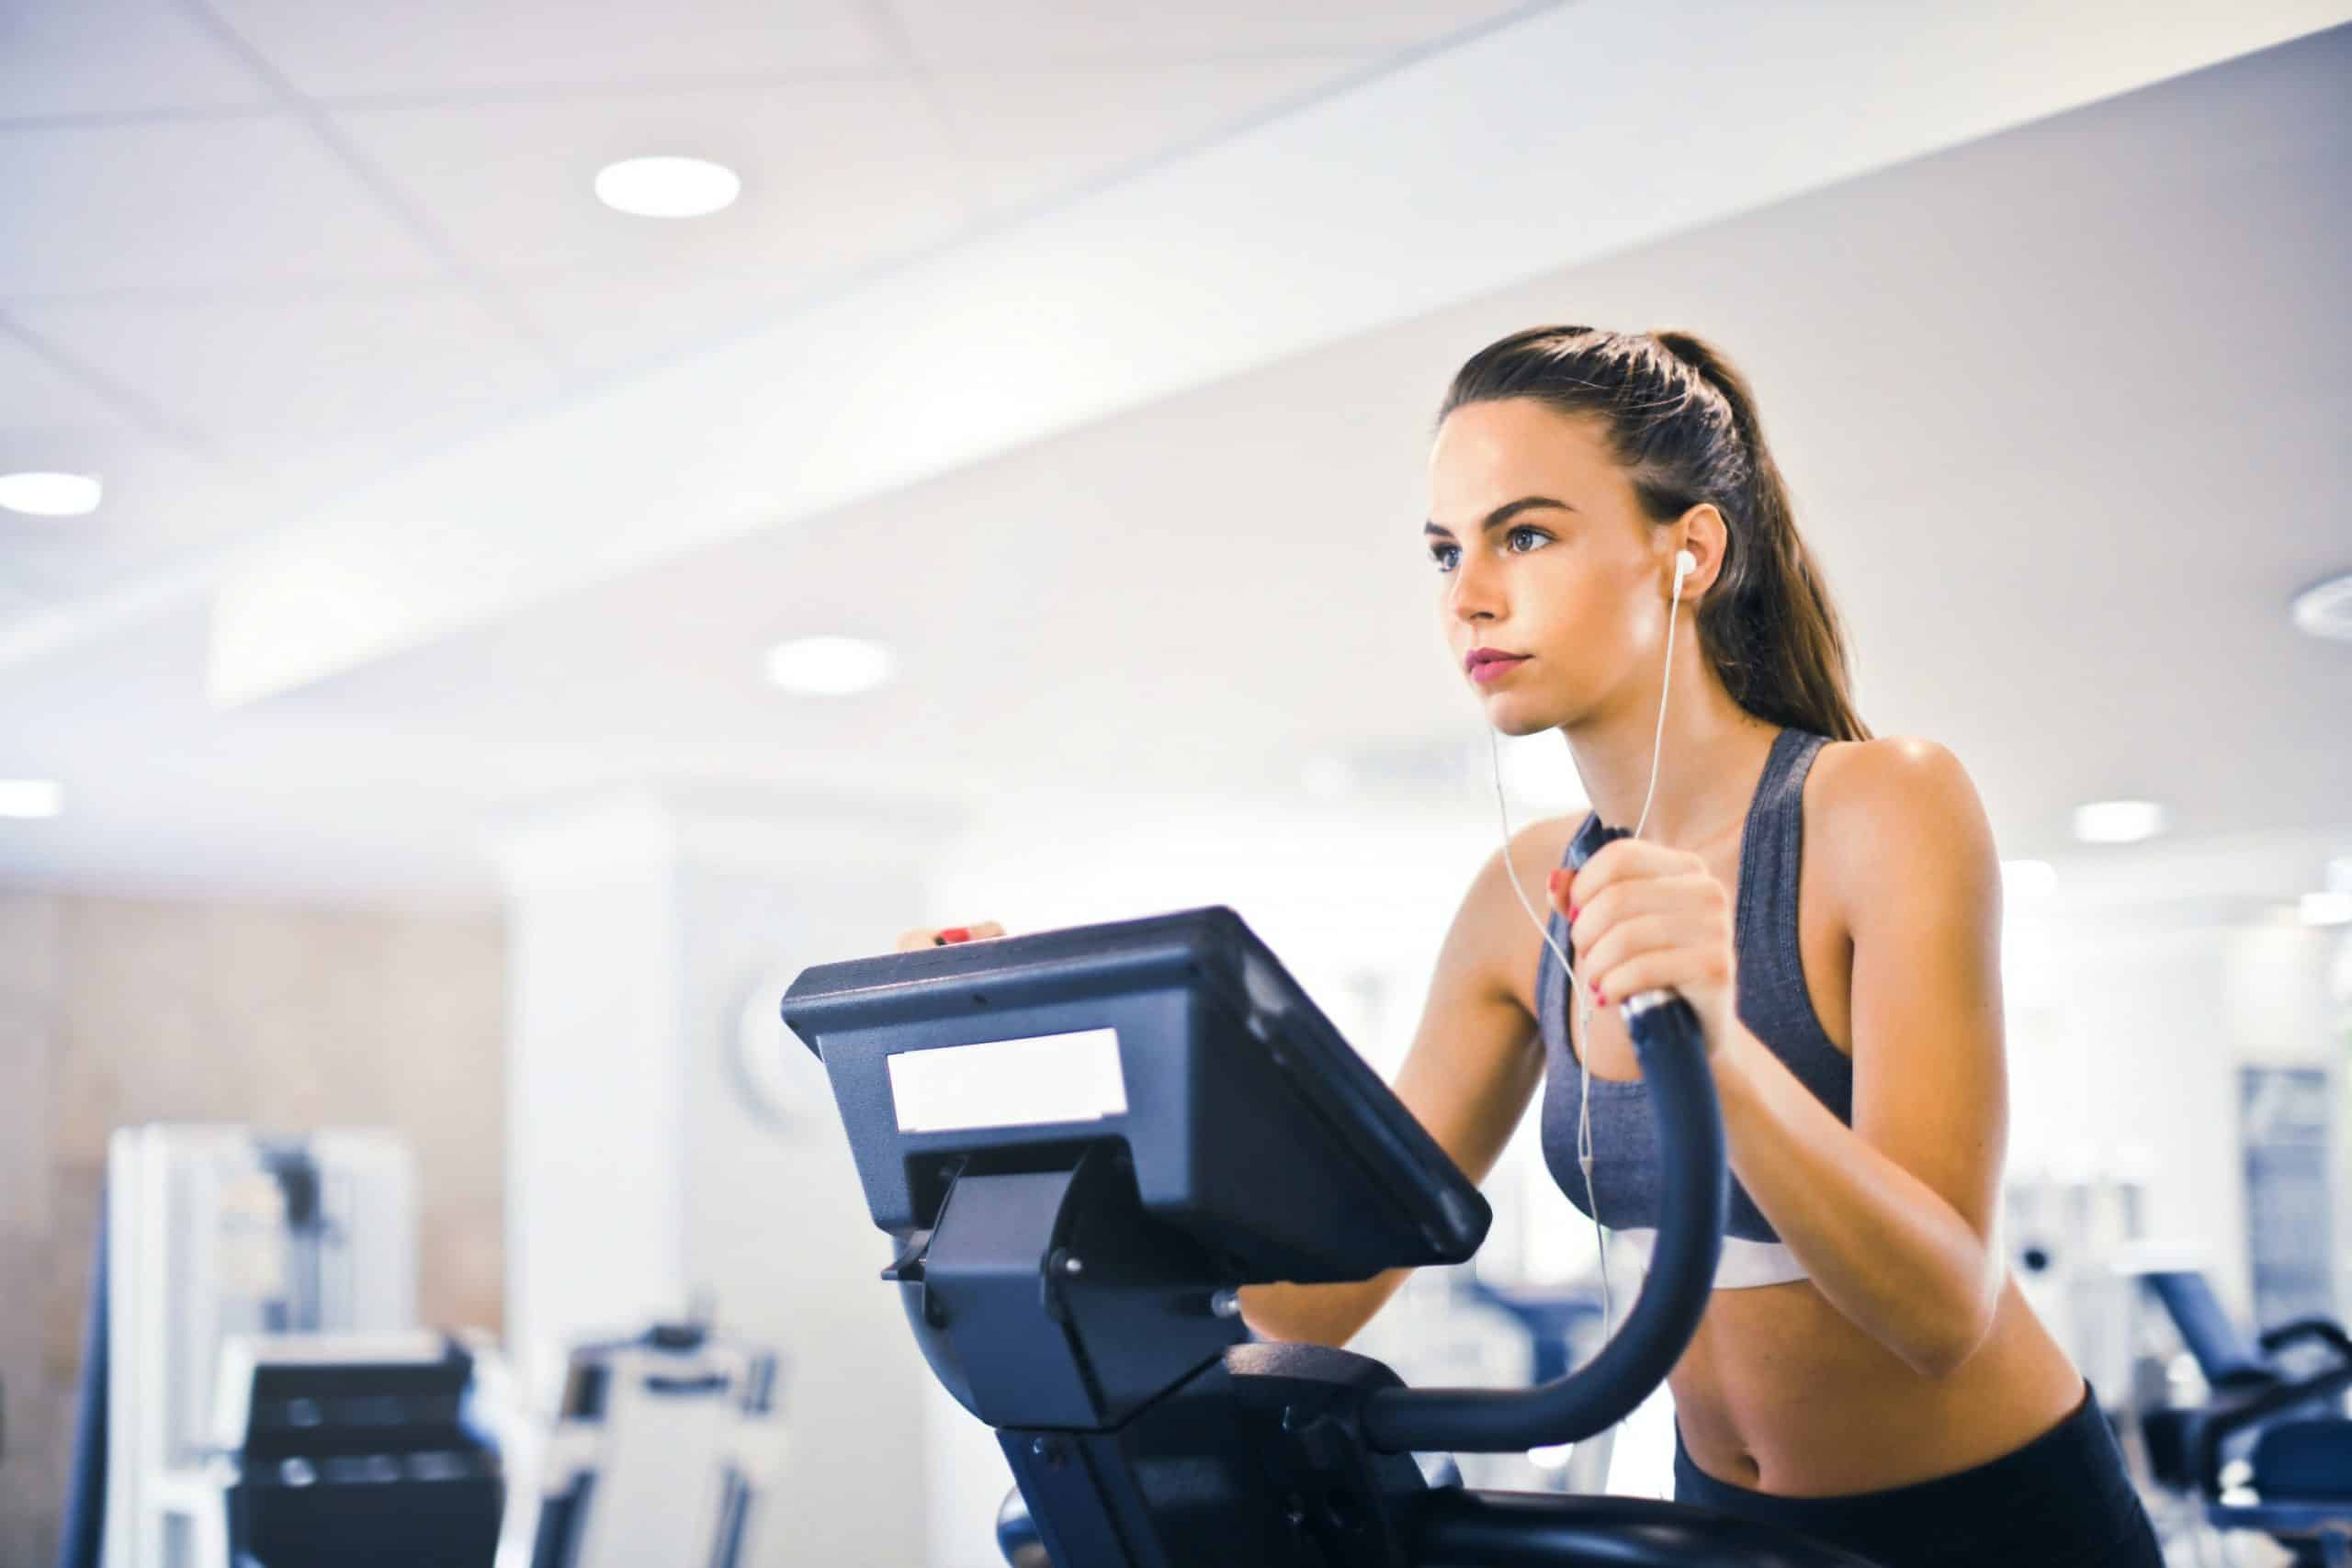 lady-athlete-on-treadmill